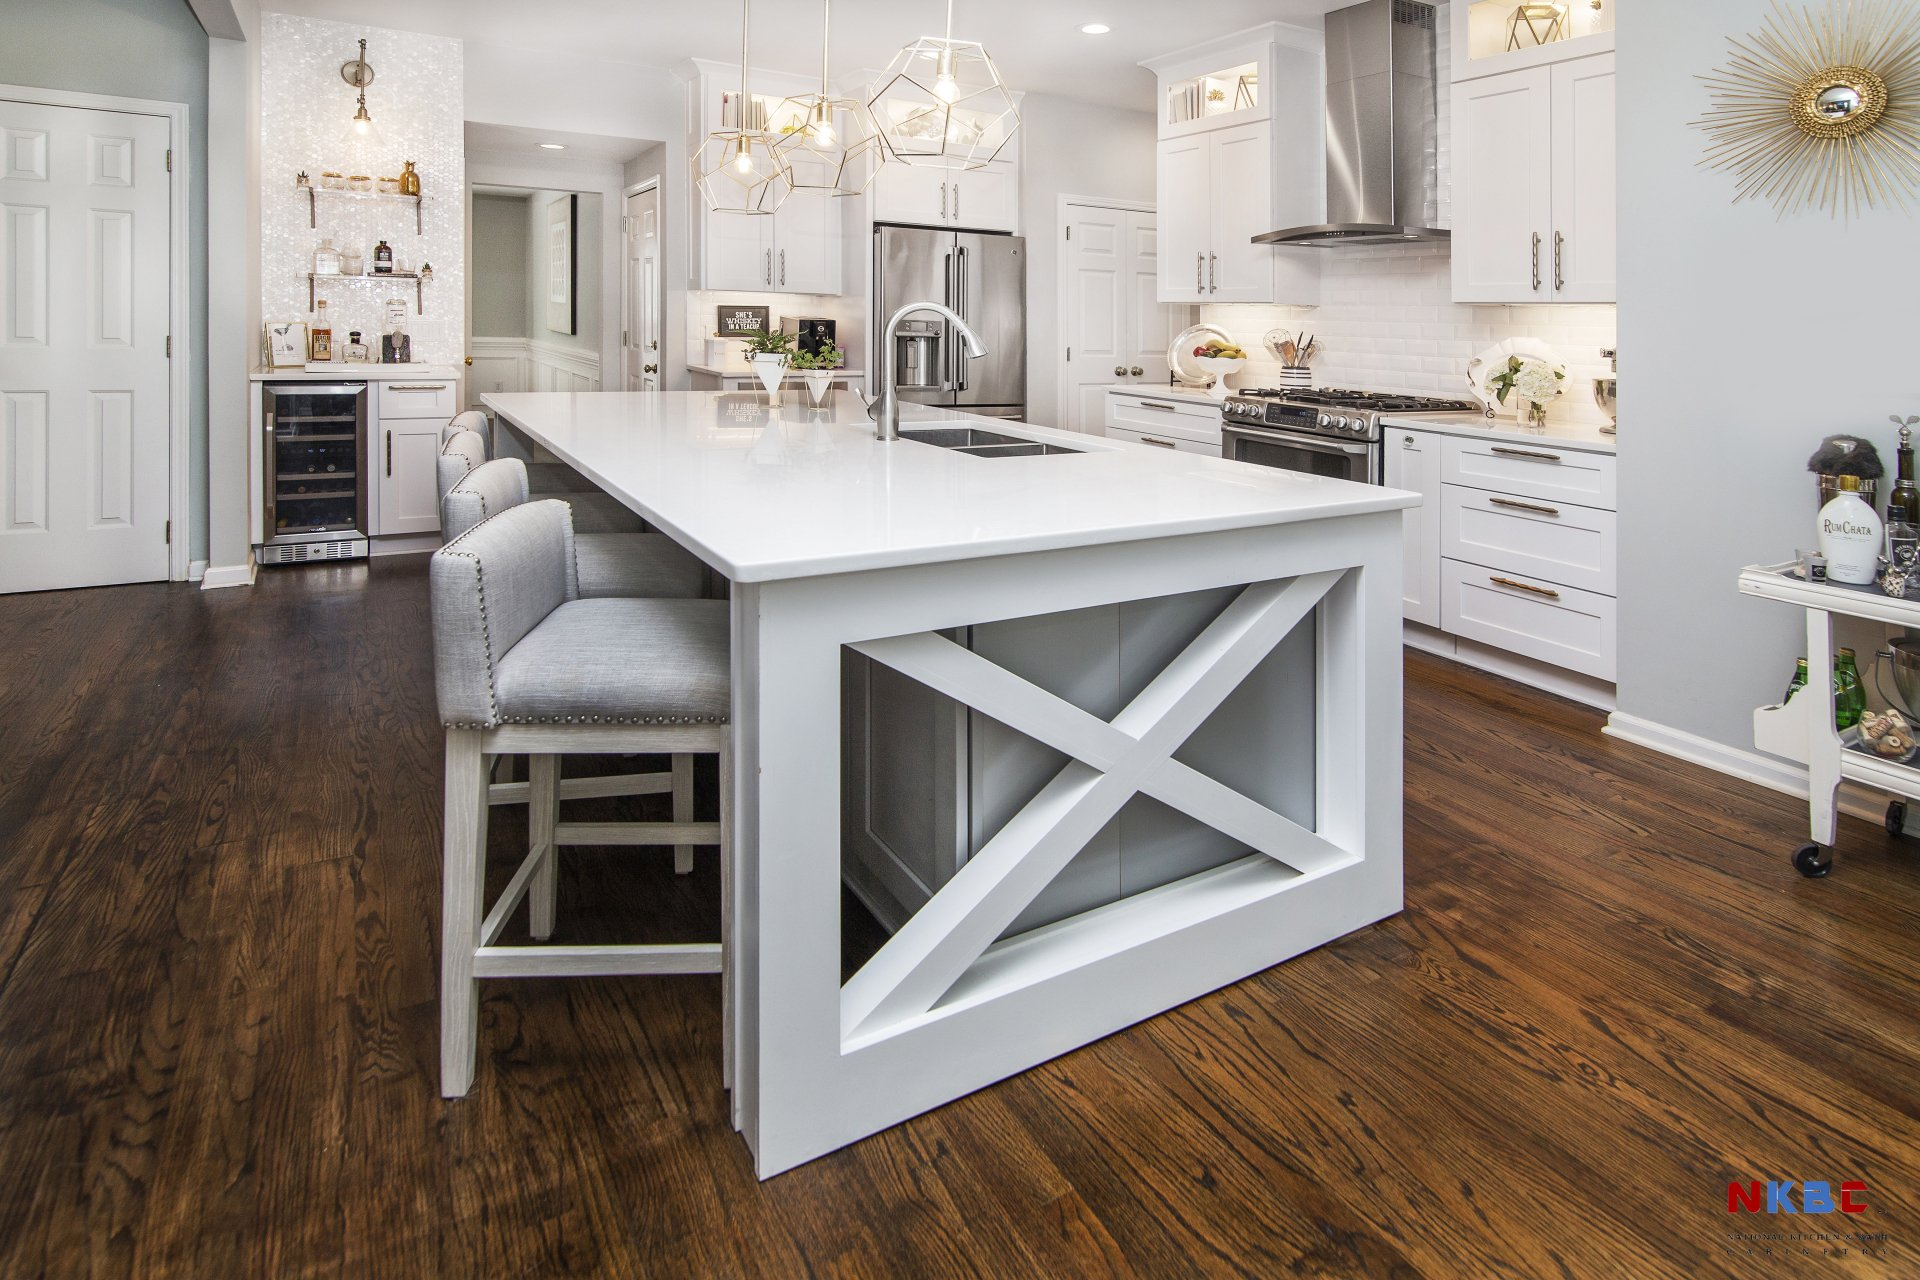 National Kitchen & Bath Cabinetry Inc - Concord, NC - Shaker ...